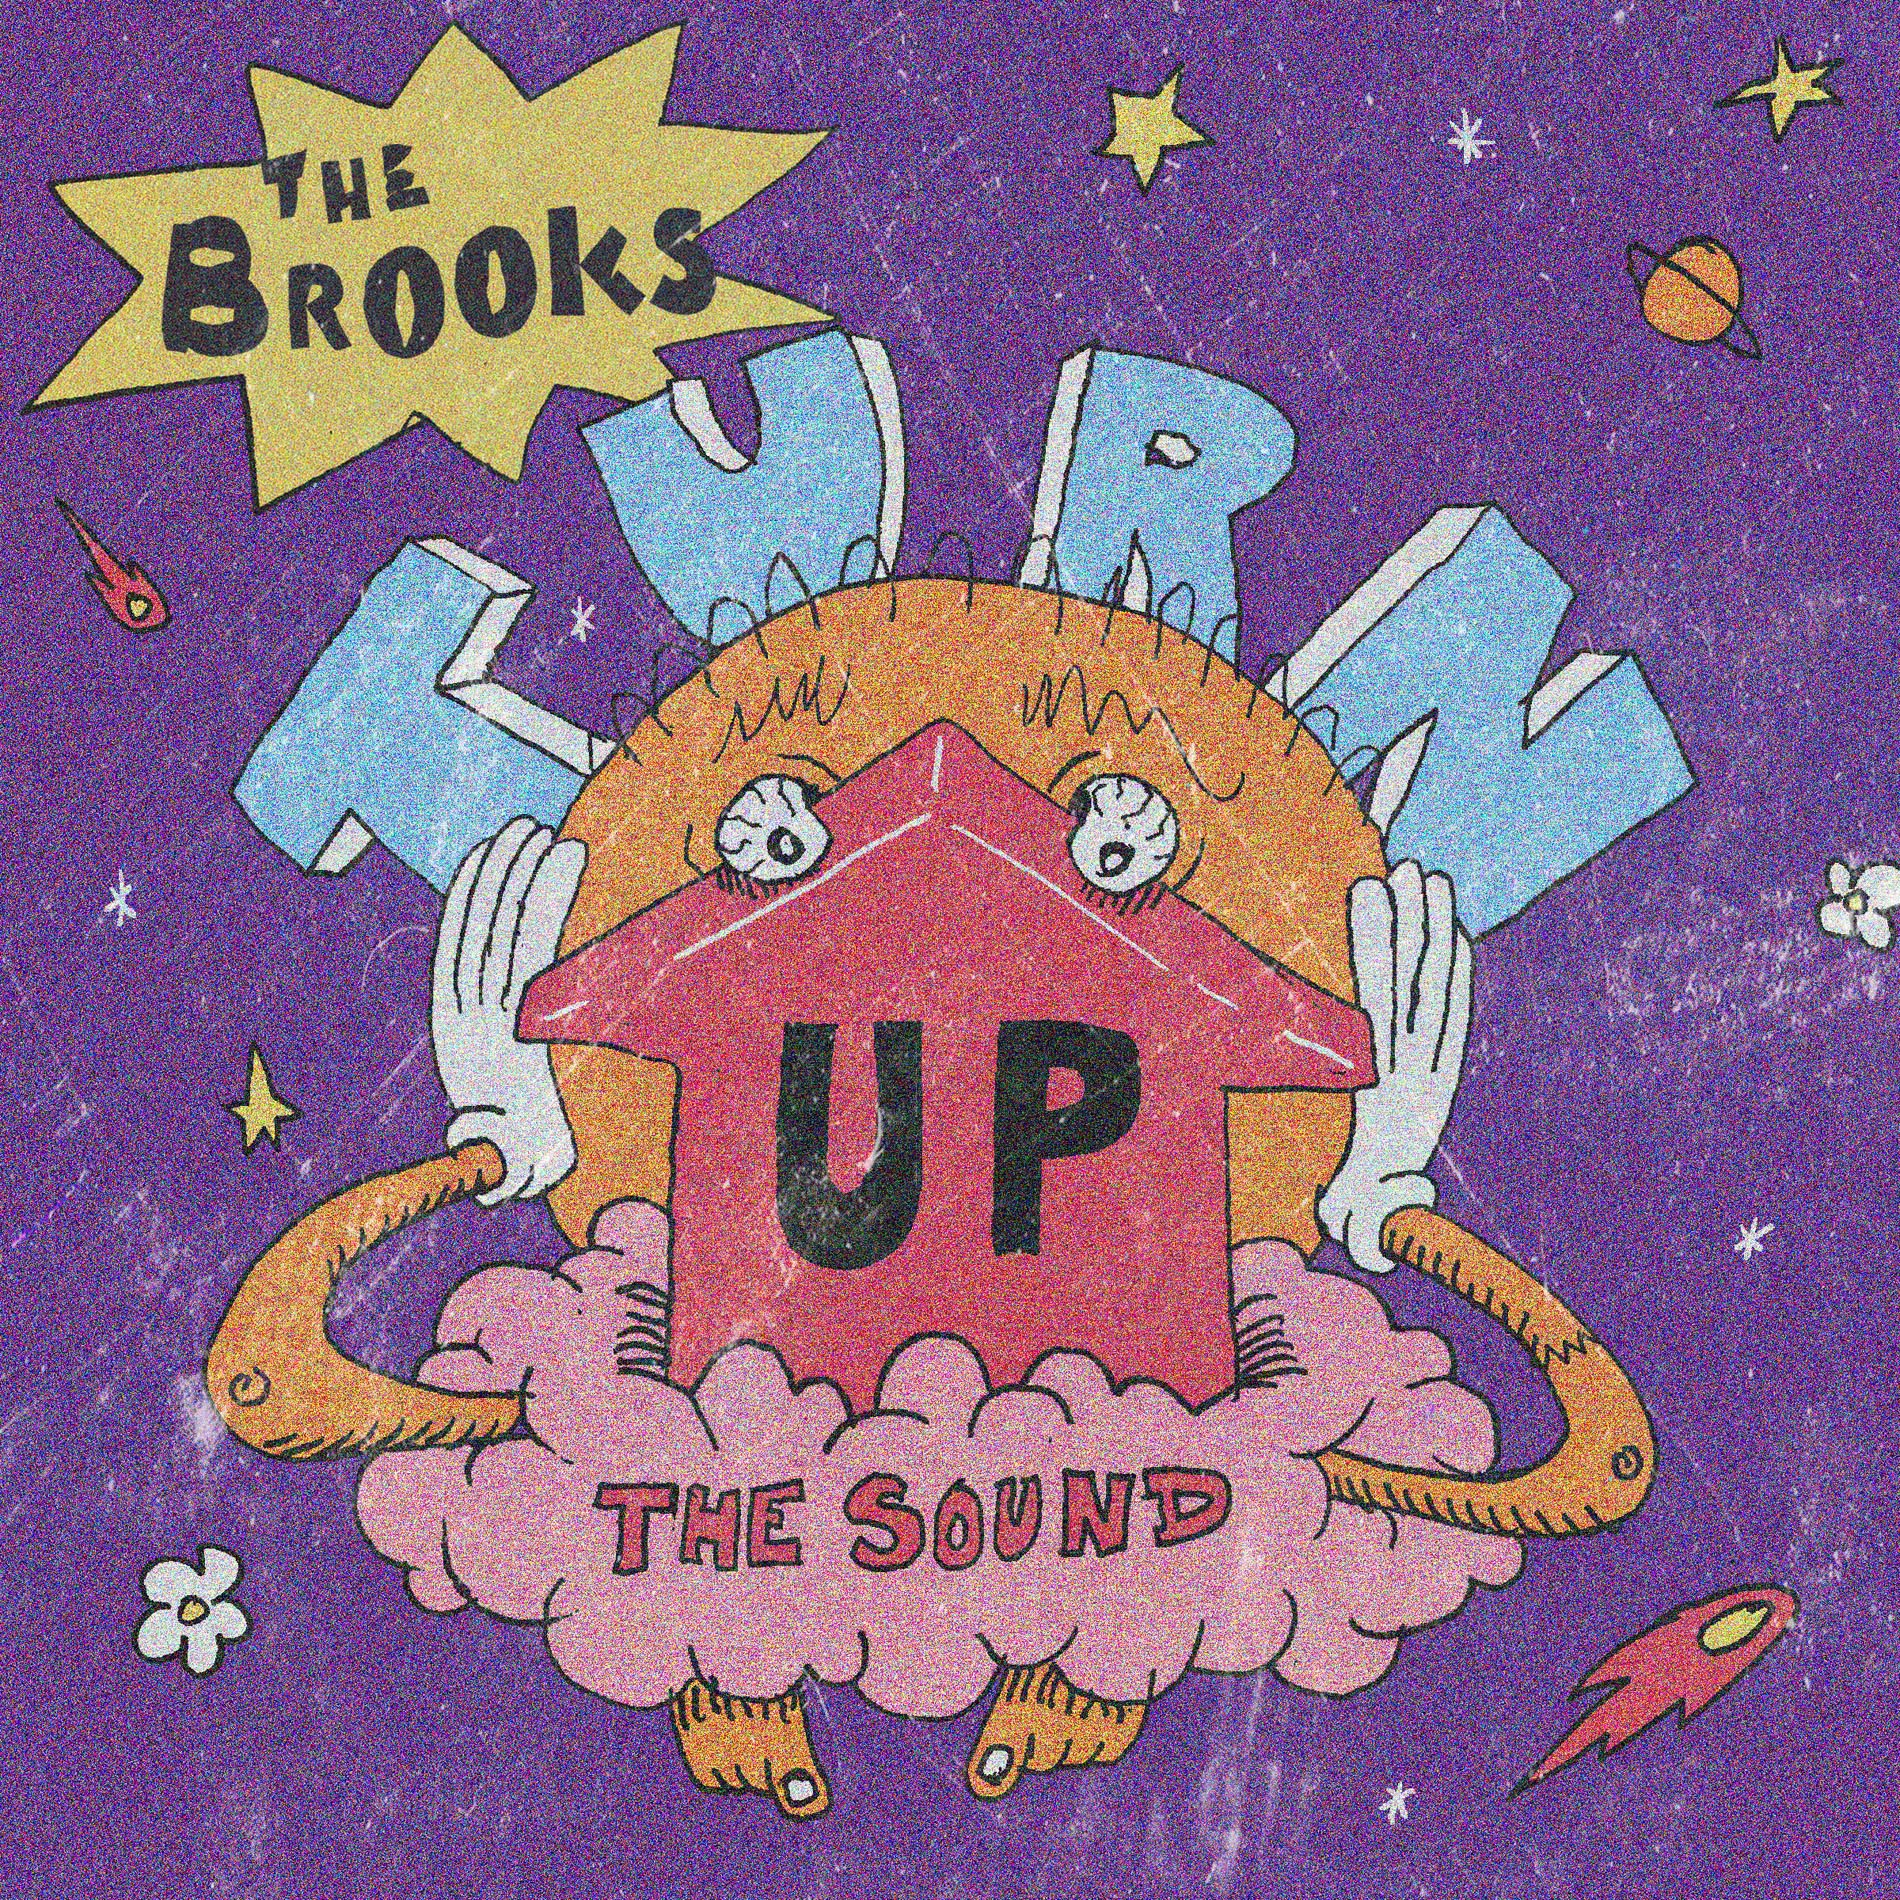 The Brooks dévoile un extrait de son album très funky Anyday Now